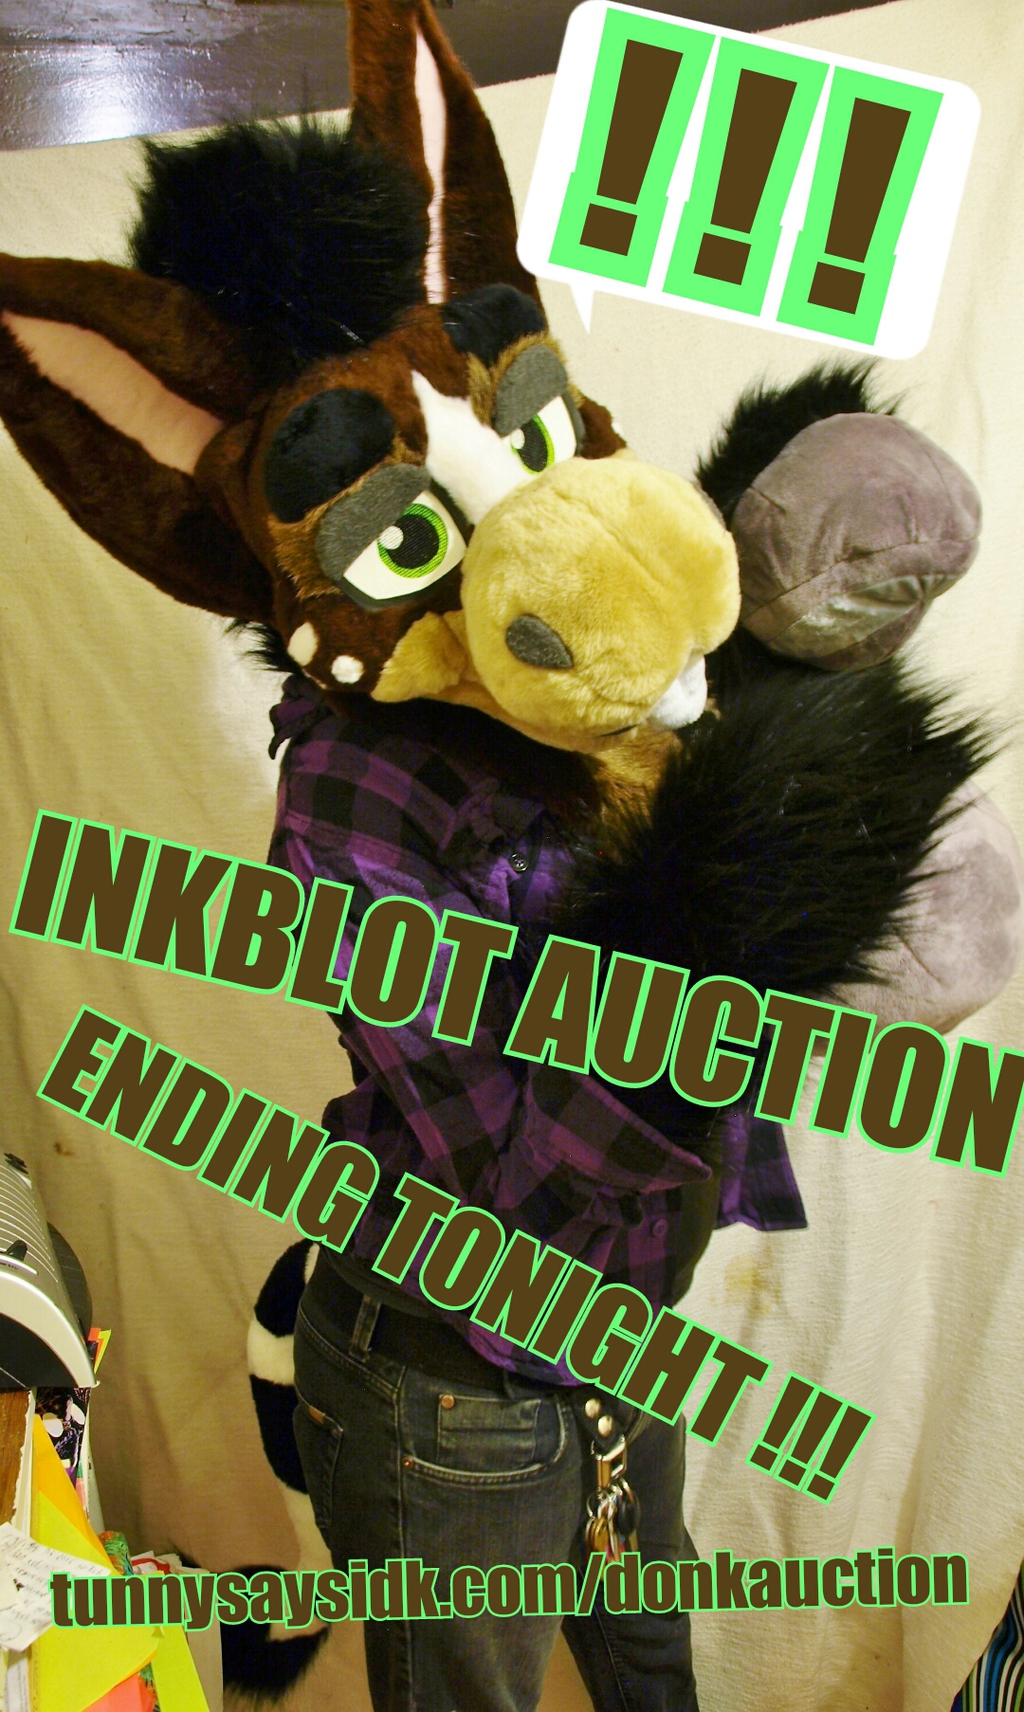 Most recent image: Auction ENDING NOW!